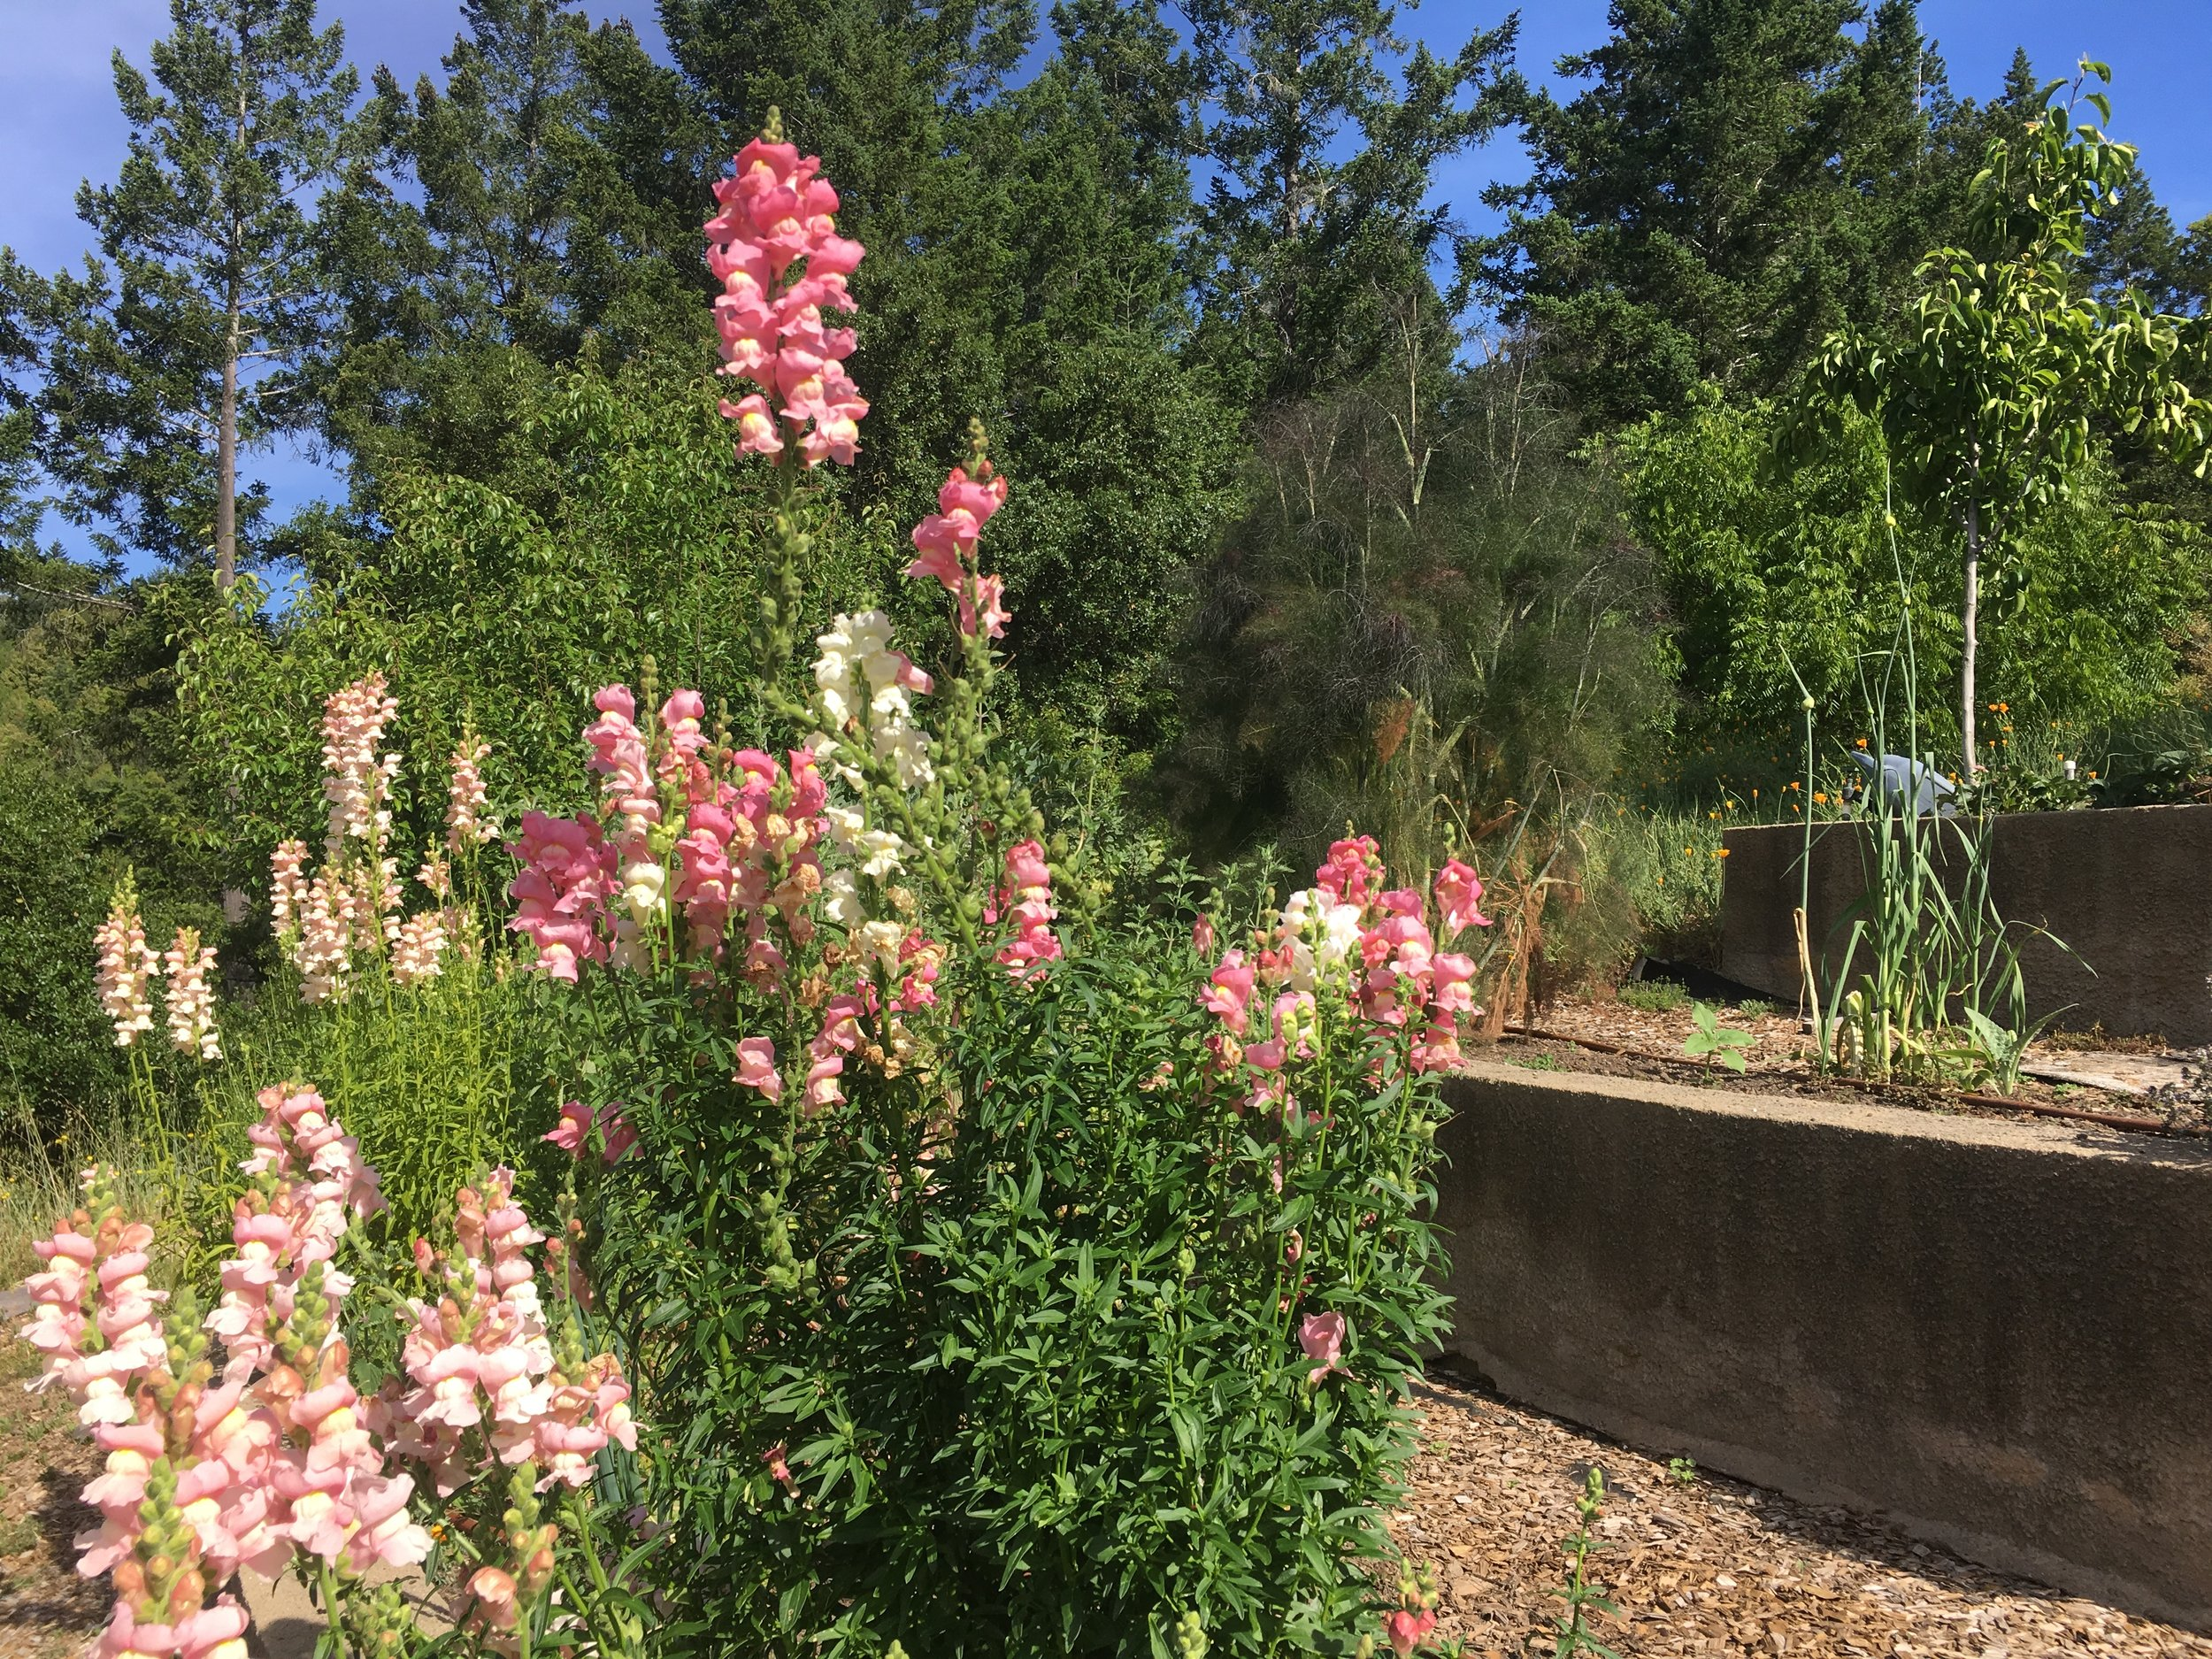 Flowers in the yard of a home for sale in Philo CA